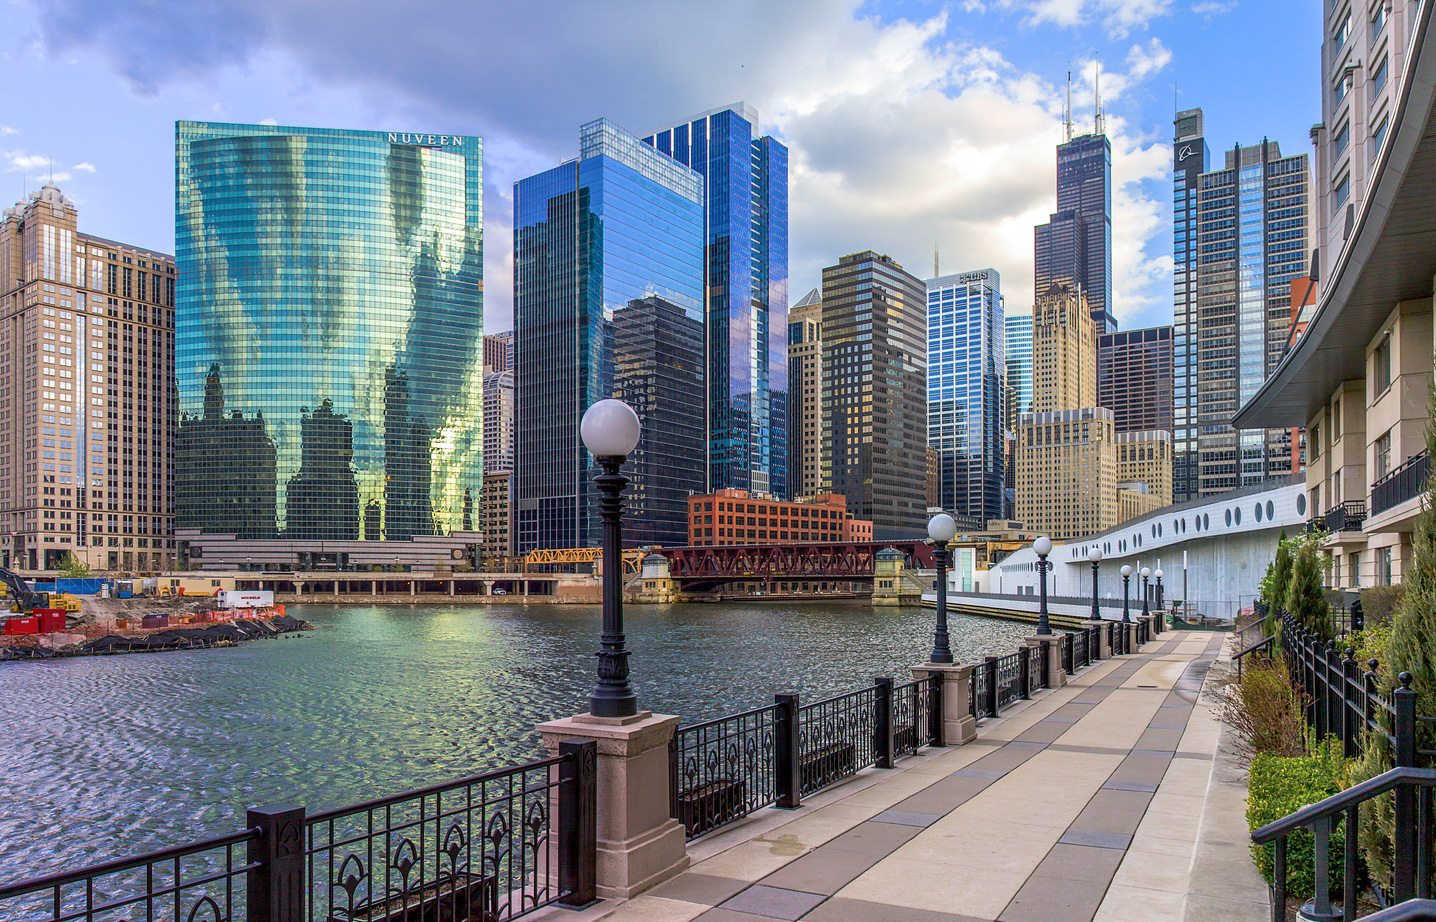 Charmant ... What U.S. City Has The Best Architecture? Chicago River Looking Toward